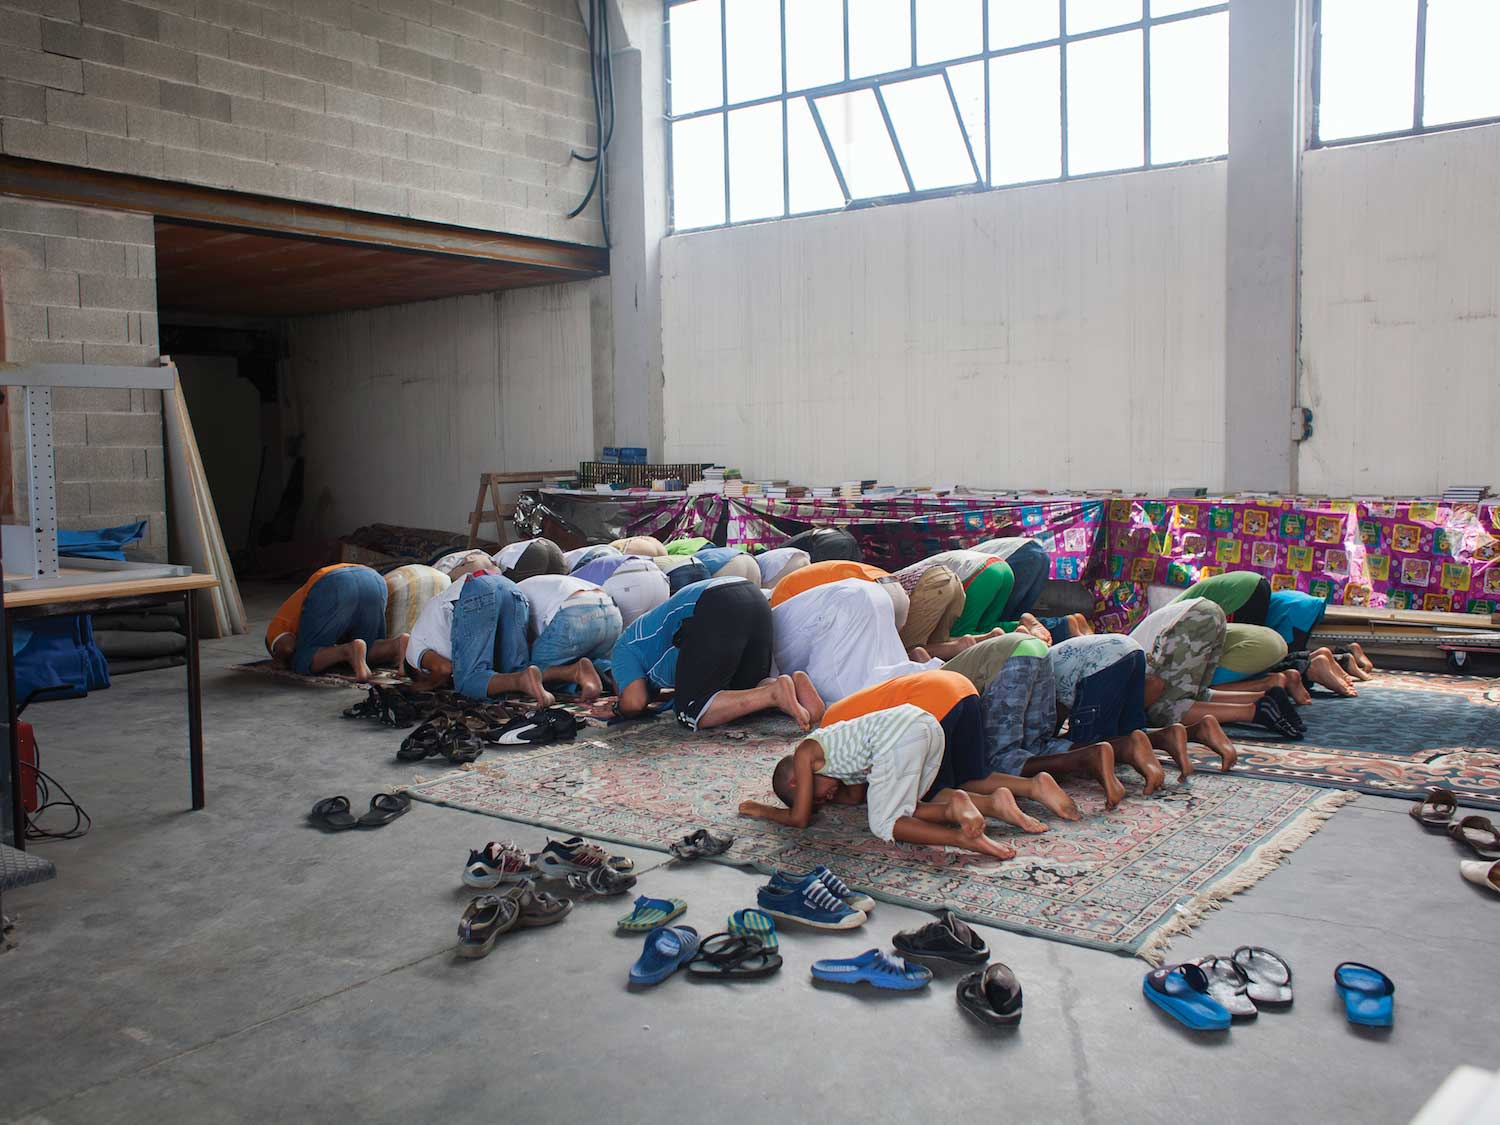 A warehouse used as makeshift place of worship for Muslims in the Province of Verona, Italy.